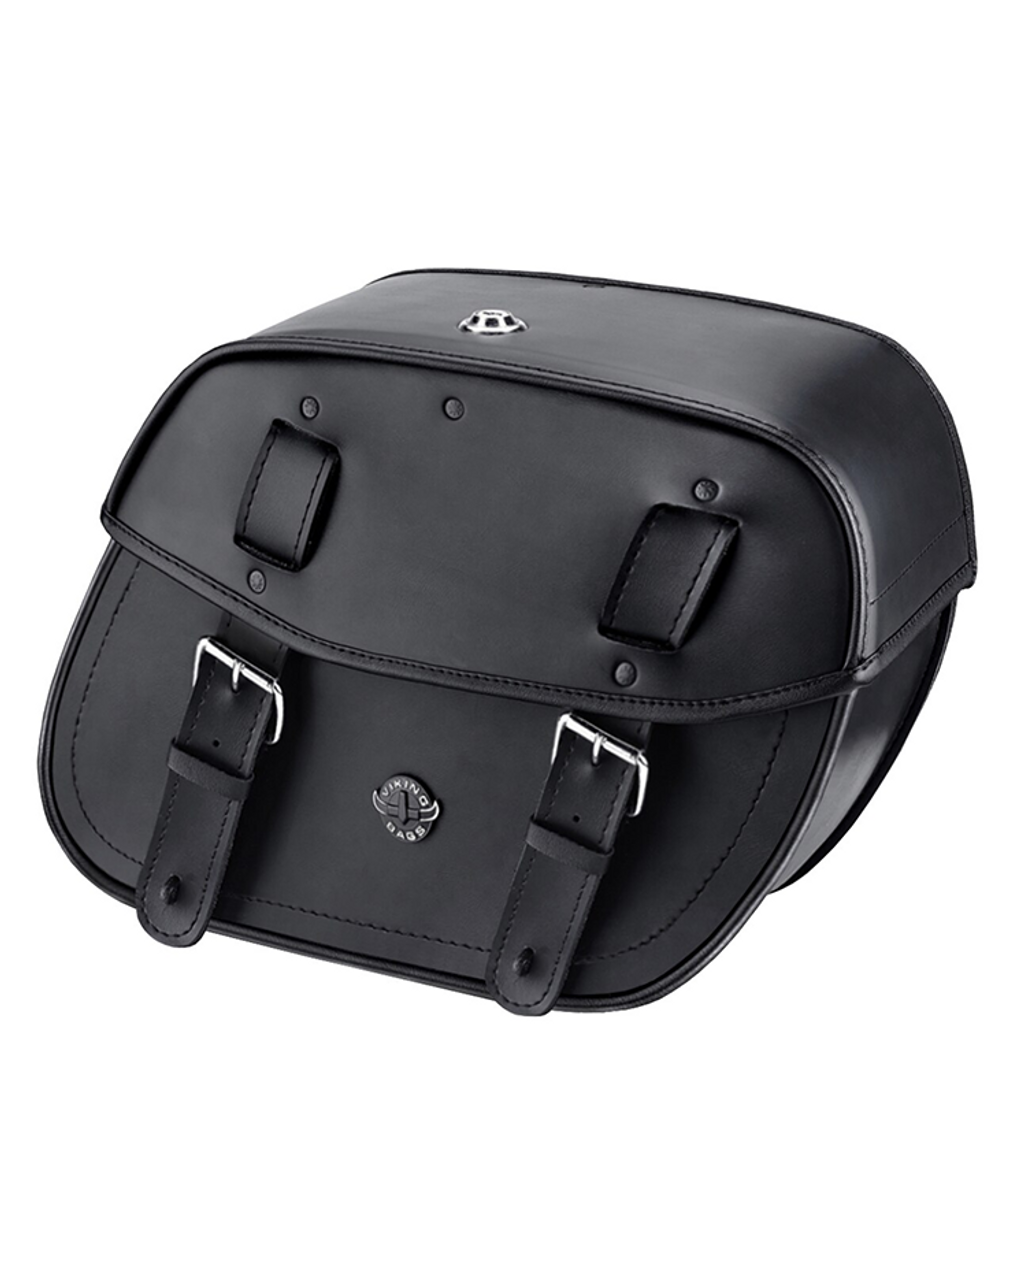 Viking sportster Specific Shock Cutout Large Motorcycle Saddlebags For Harley Sportster 883 Custom XL883C Bag View